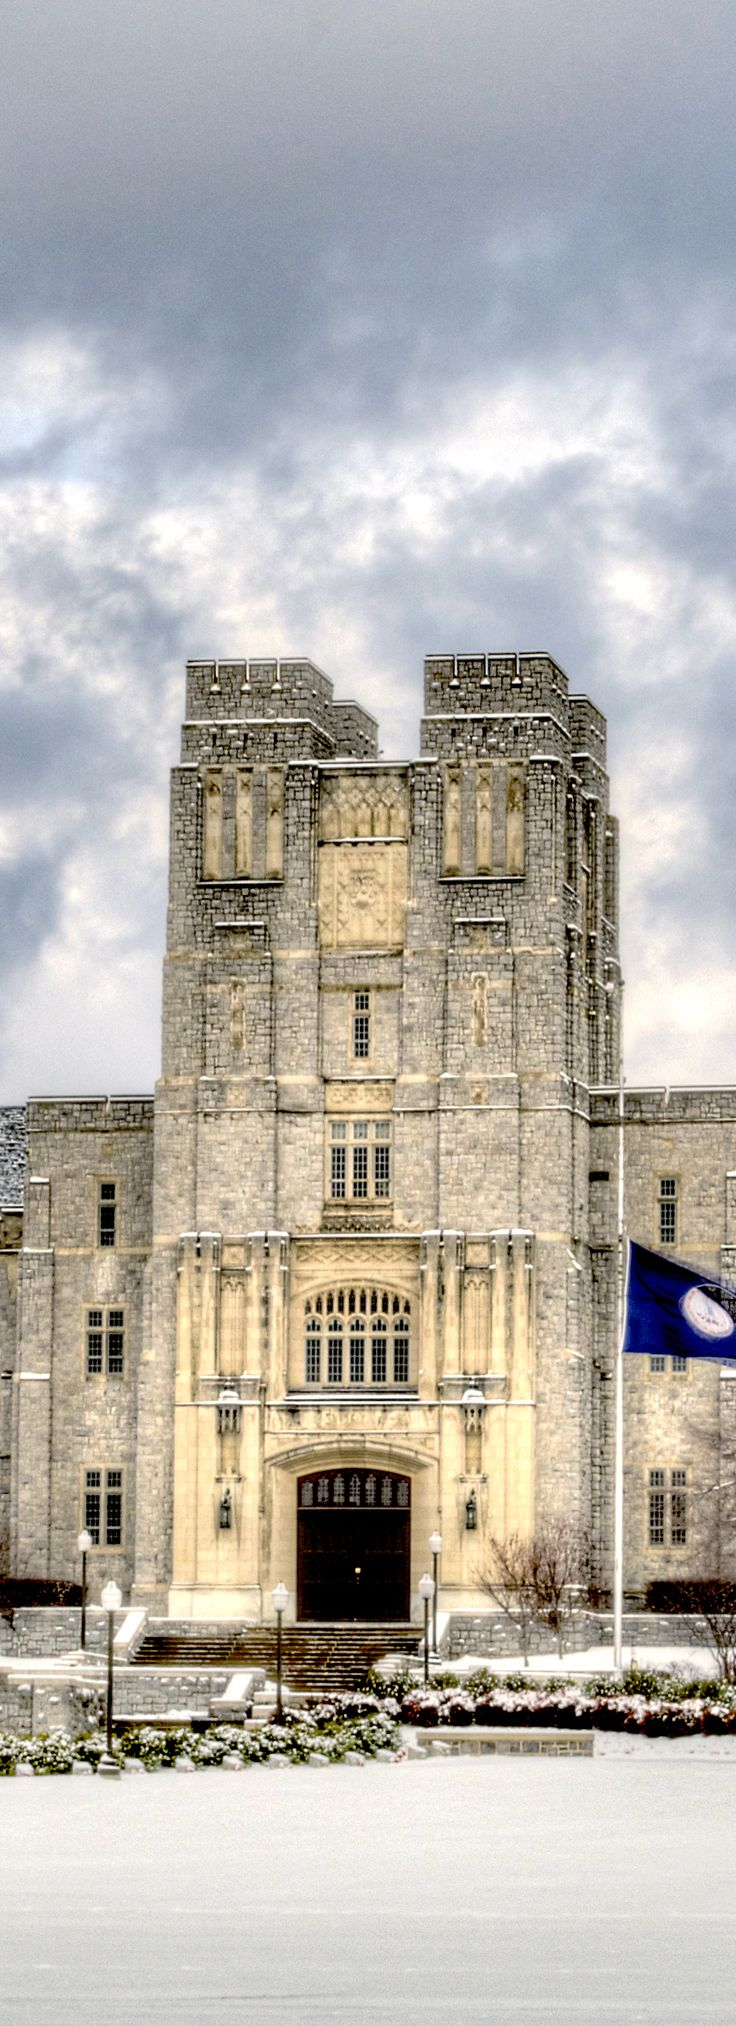 WOW-my school is beautiful Burruss Hall at Virginia Tech in winter, Blacksburg, VA, Photo by Peter Means